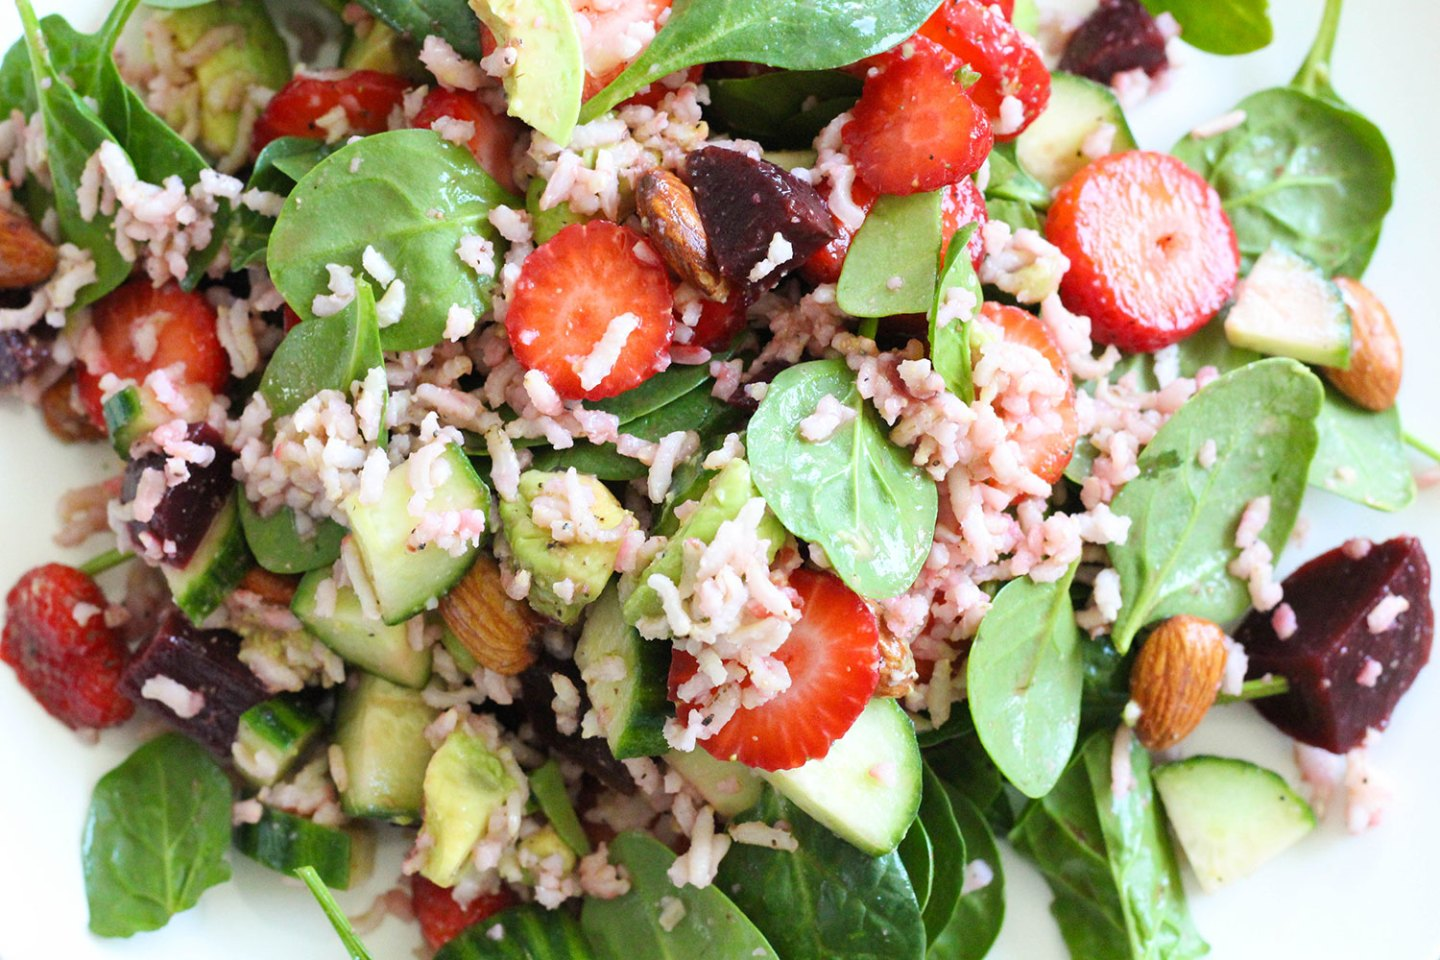 Summer Strawberry, Brown Rice & Cucumber Salad (gluten-free, dairy-free)